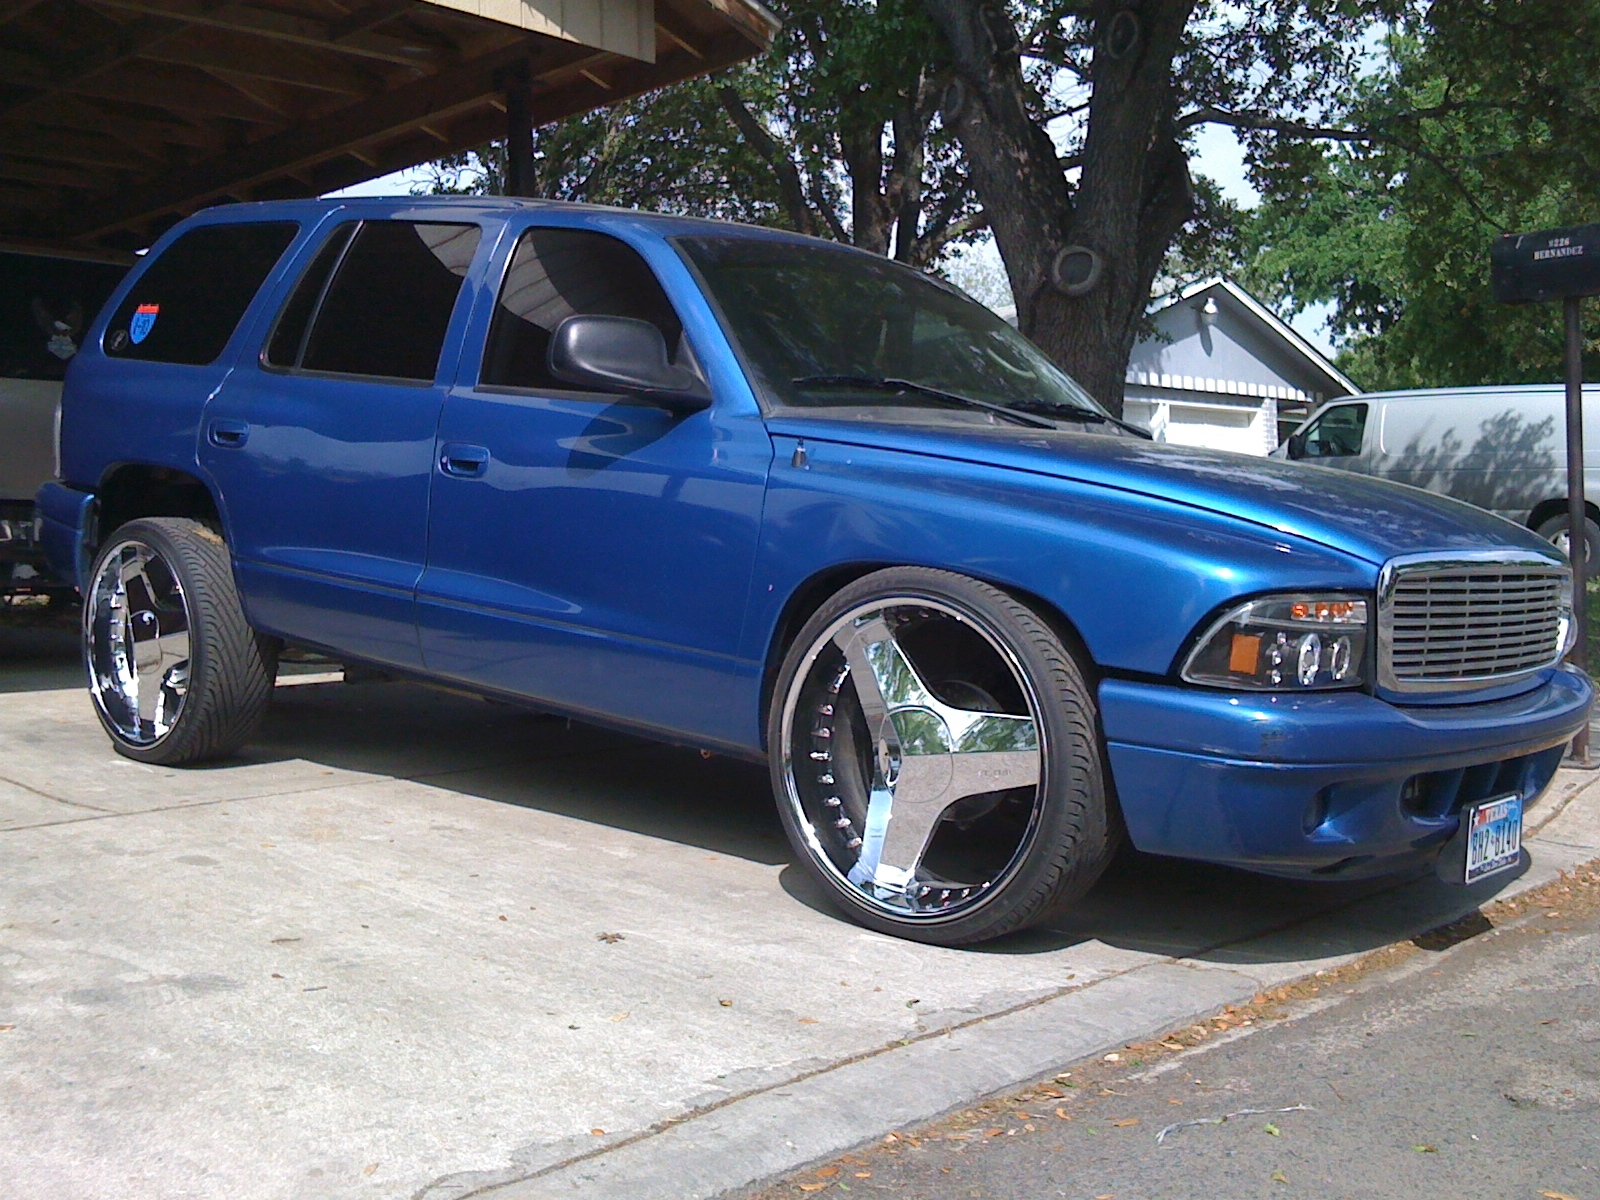 BAGGED210's 2001 Dodge Durango